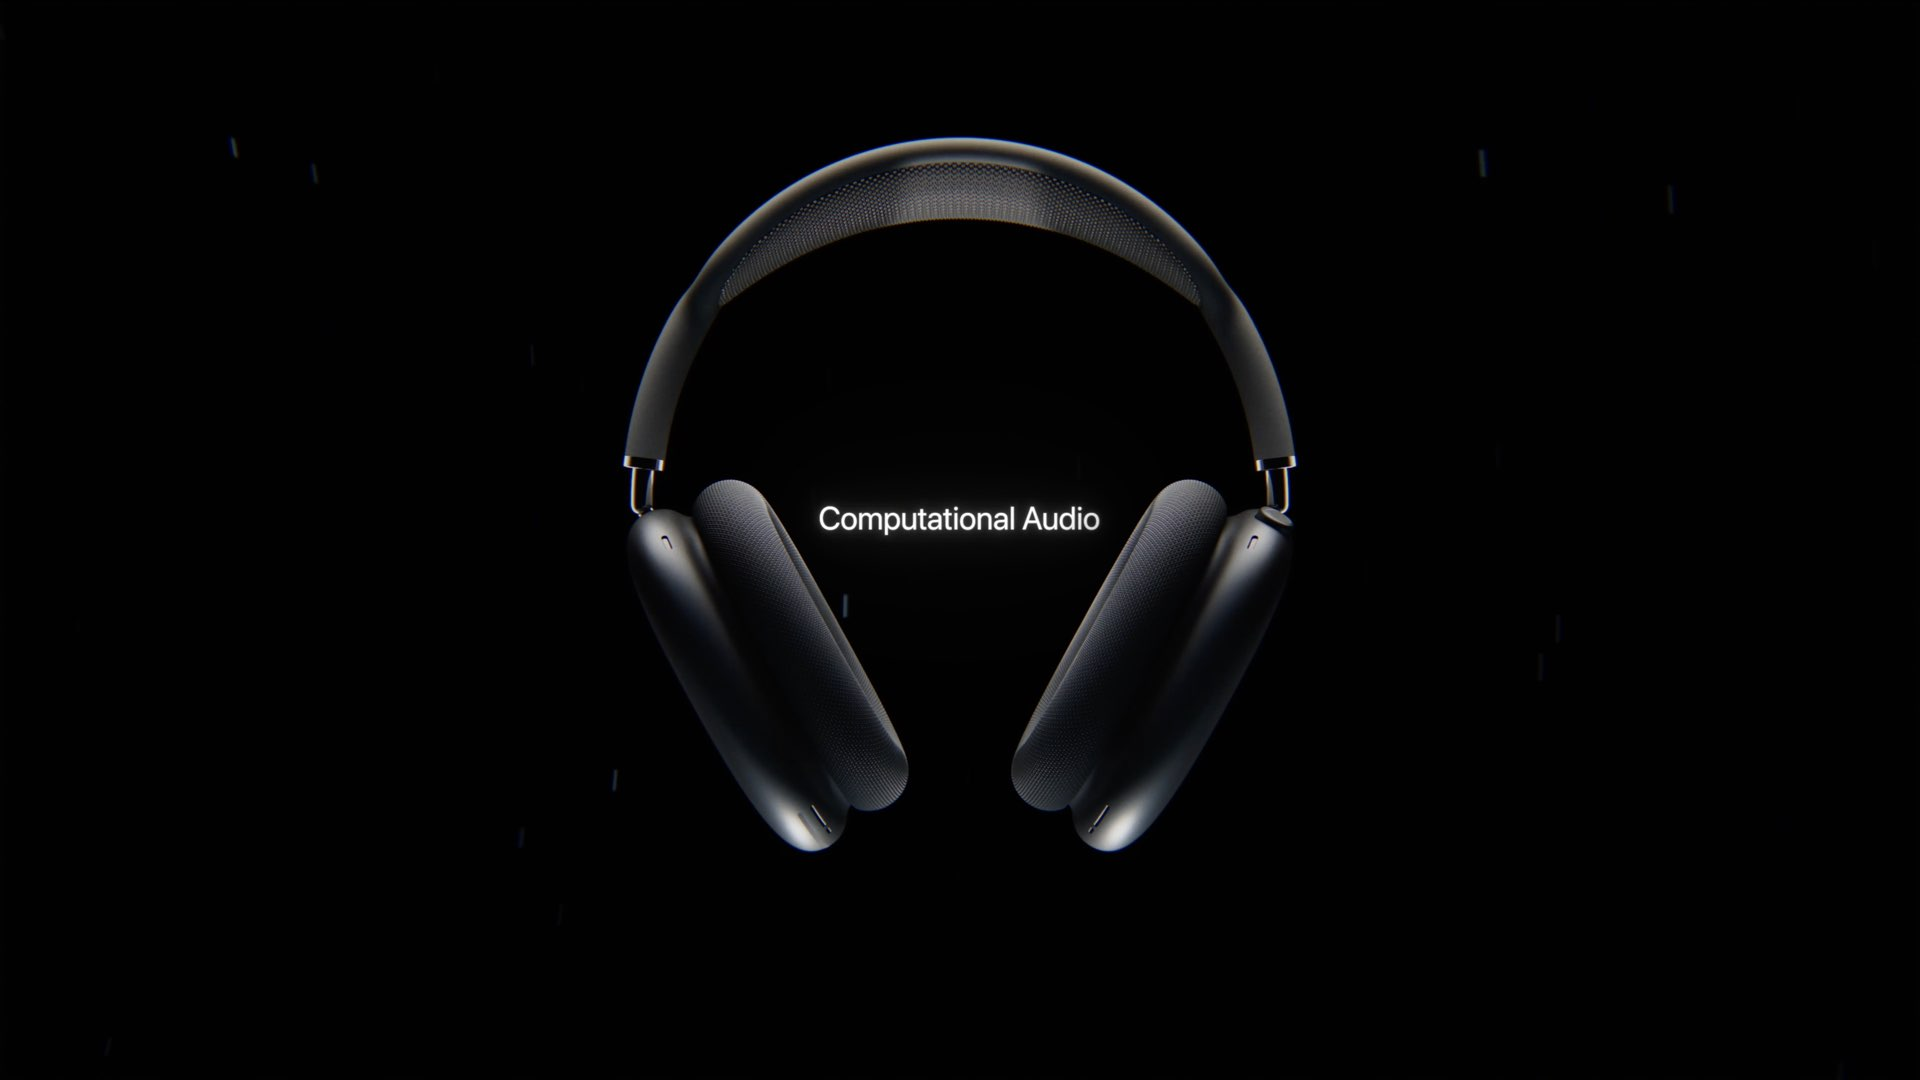 Reset AirPods Max tutorial - an image showing a pair of black AirPods Max headphones set against a black background